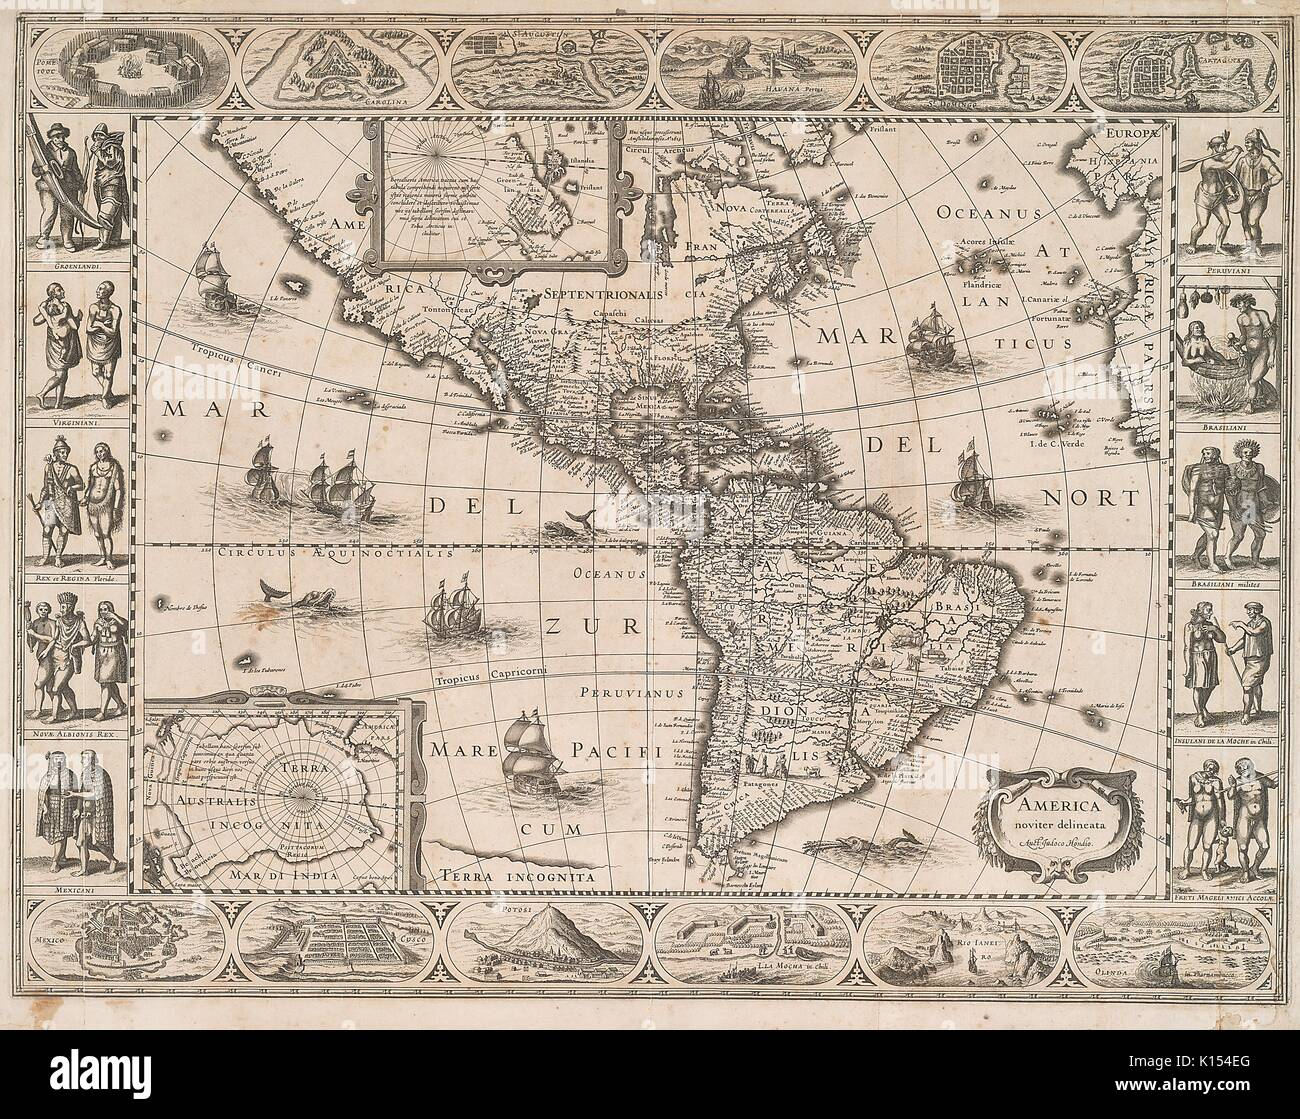 Early etched map of the Americas, America Noviter Delineata, circa 1641, depicting boats on the oceans, with a later added border of images of the different native peoples and scenery along the North and South American territories, 1843. - Stock Image